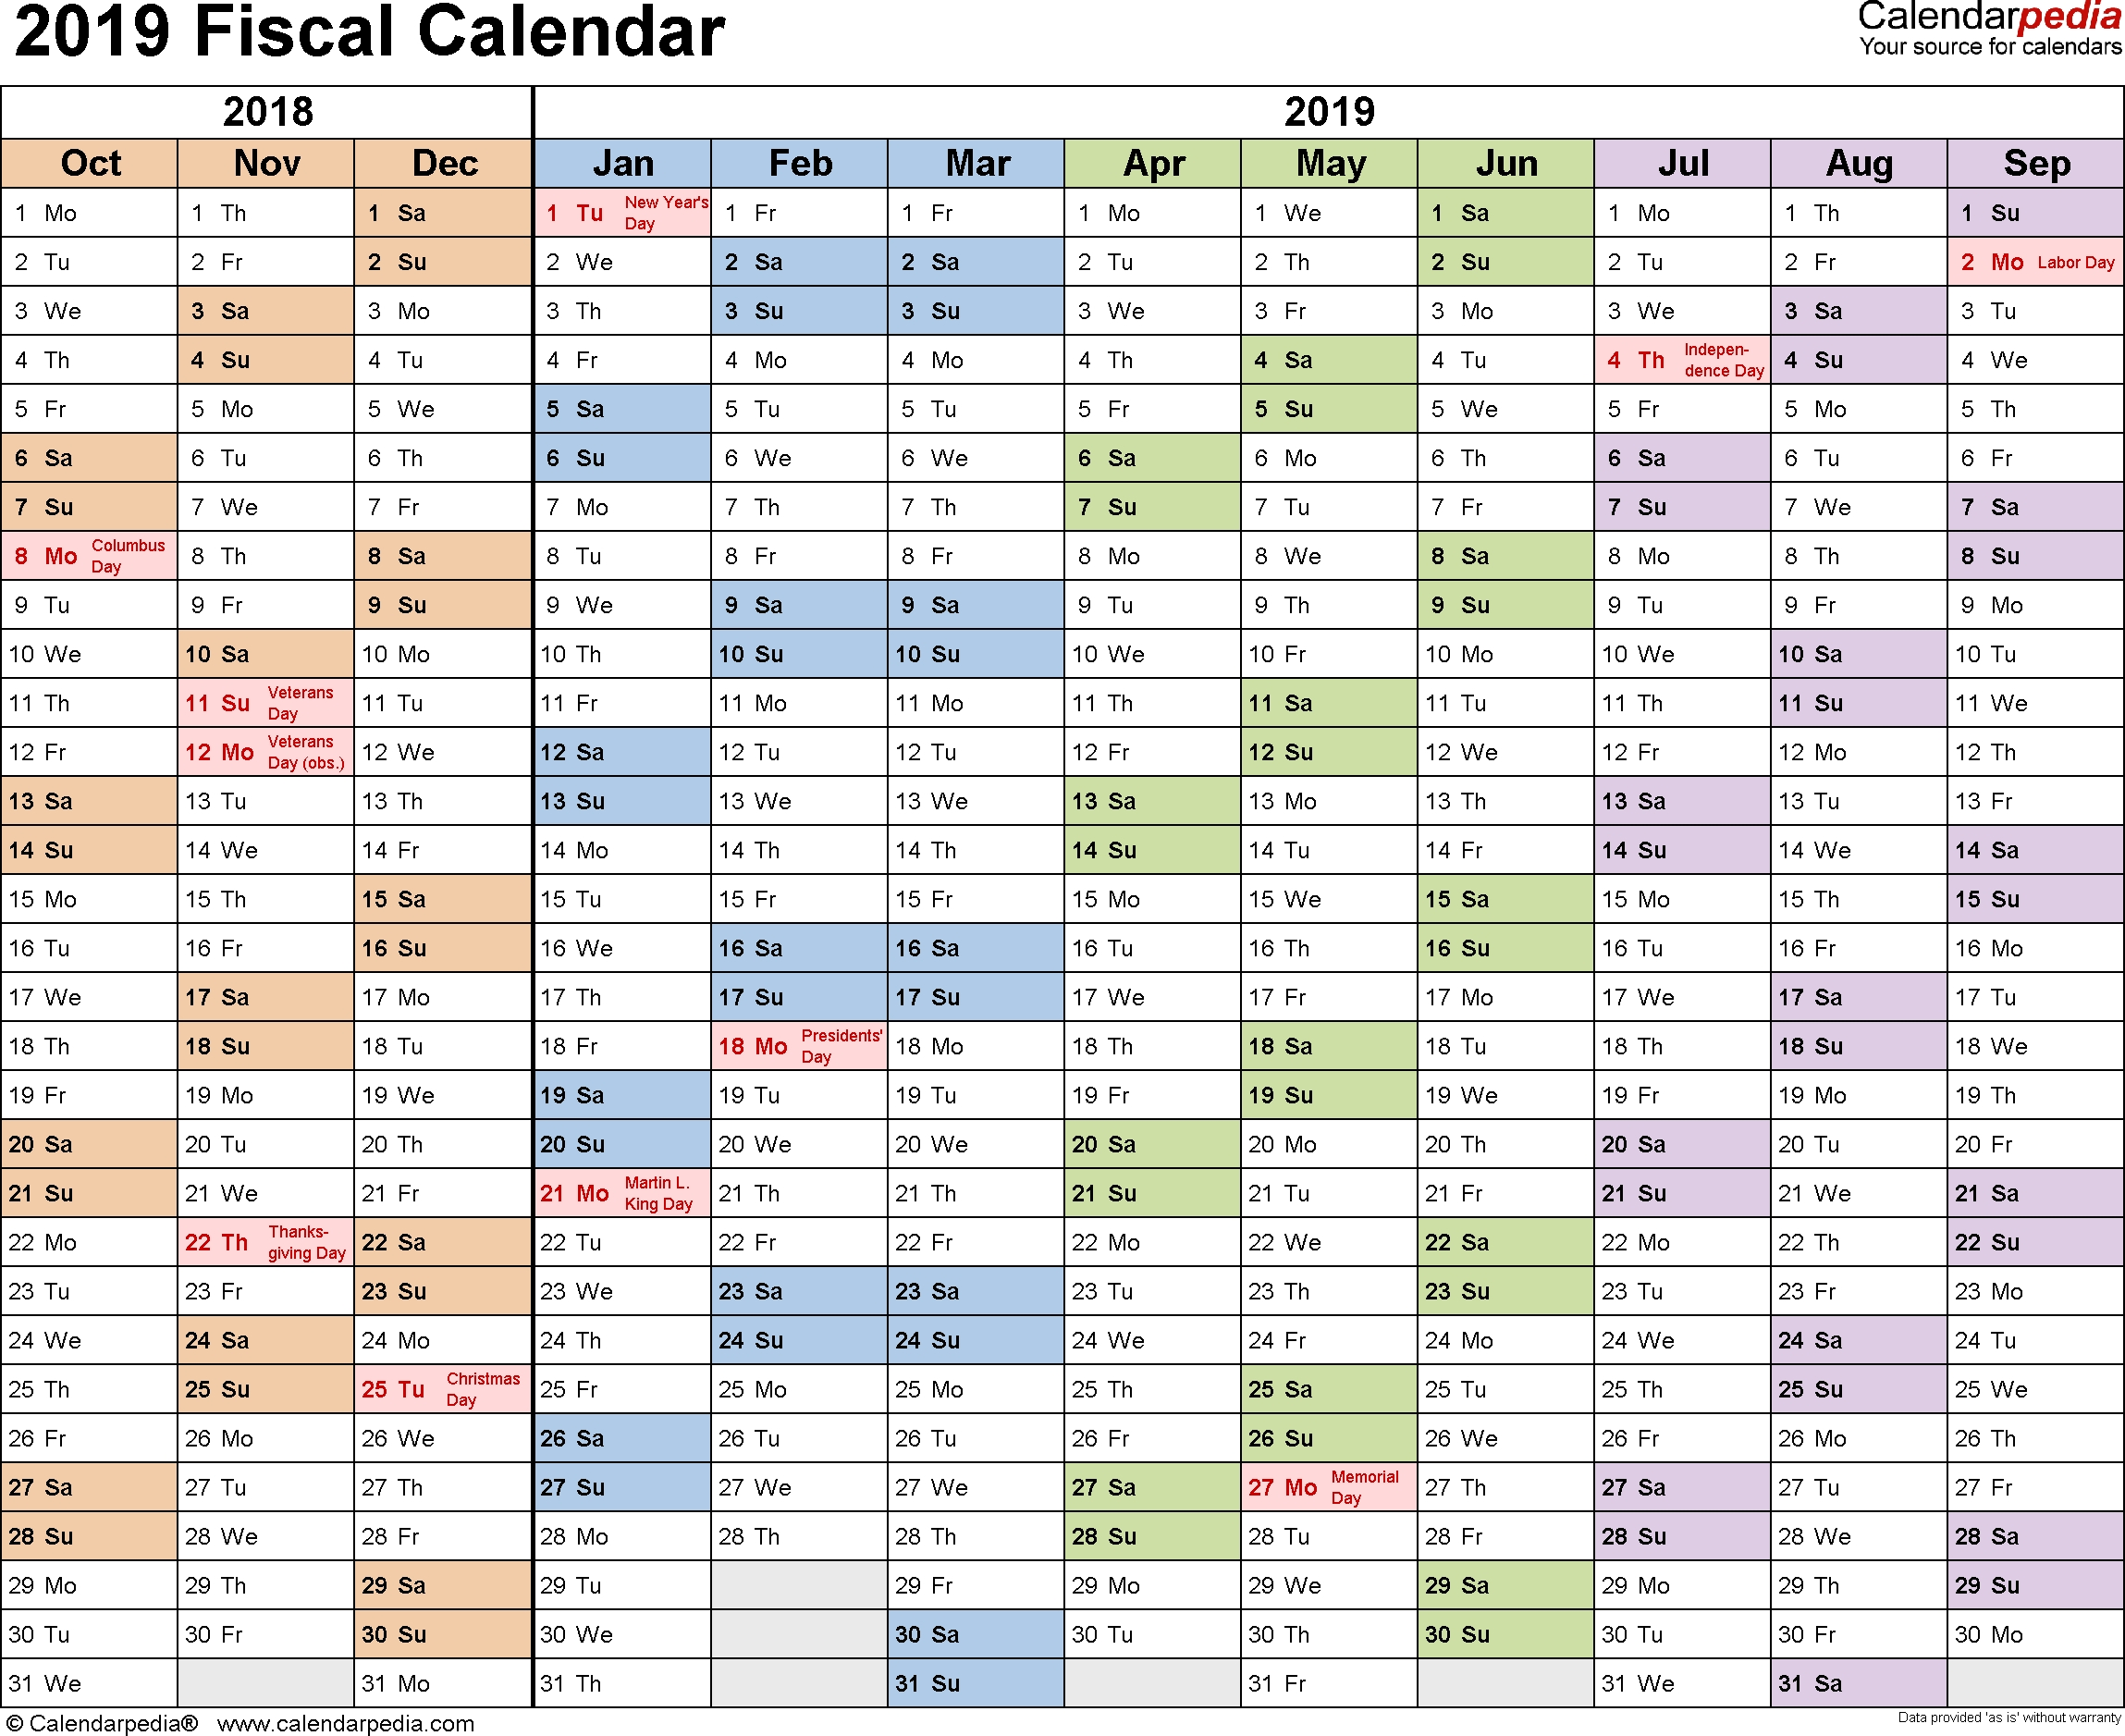 Fiscal Calendars 2019 - Free Printable Word Templates